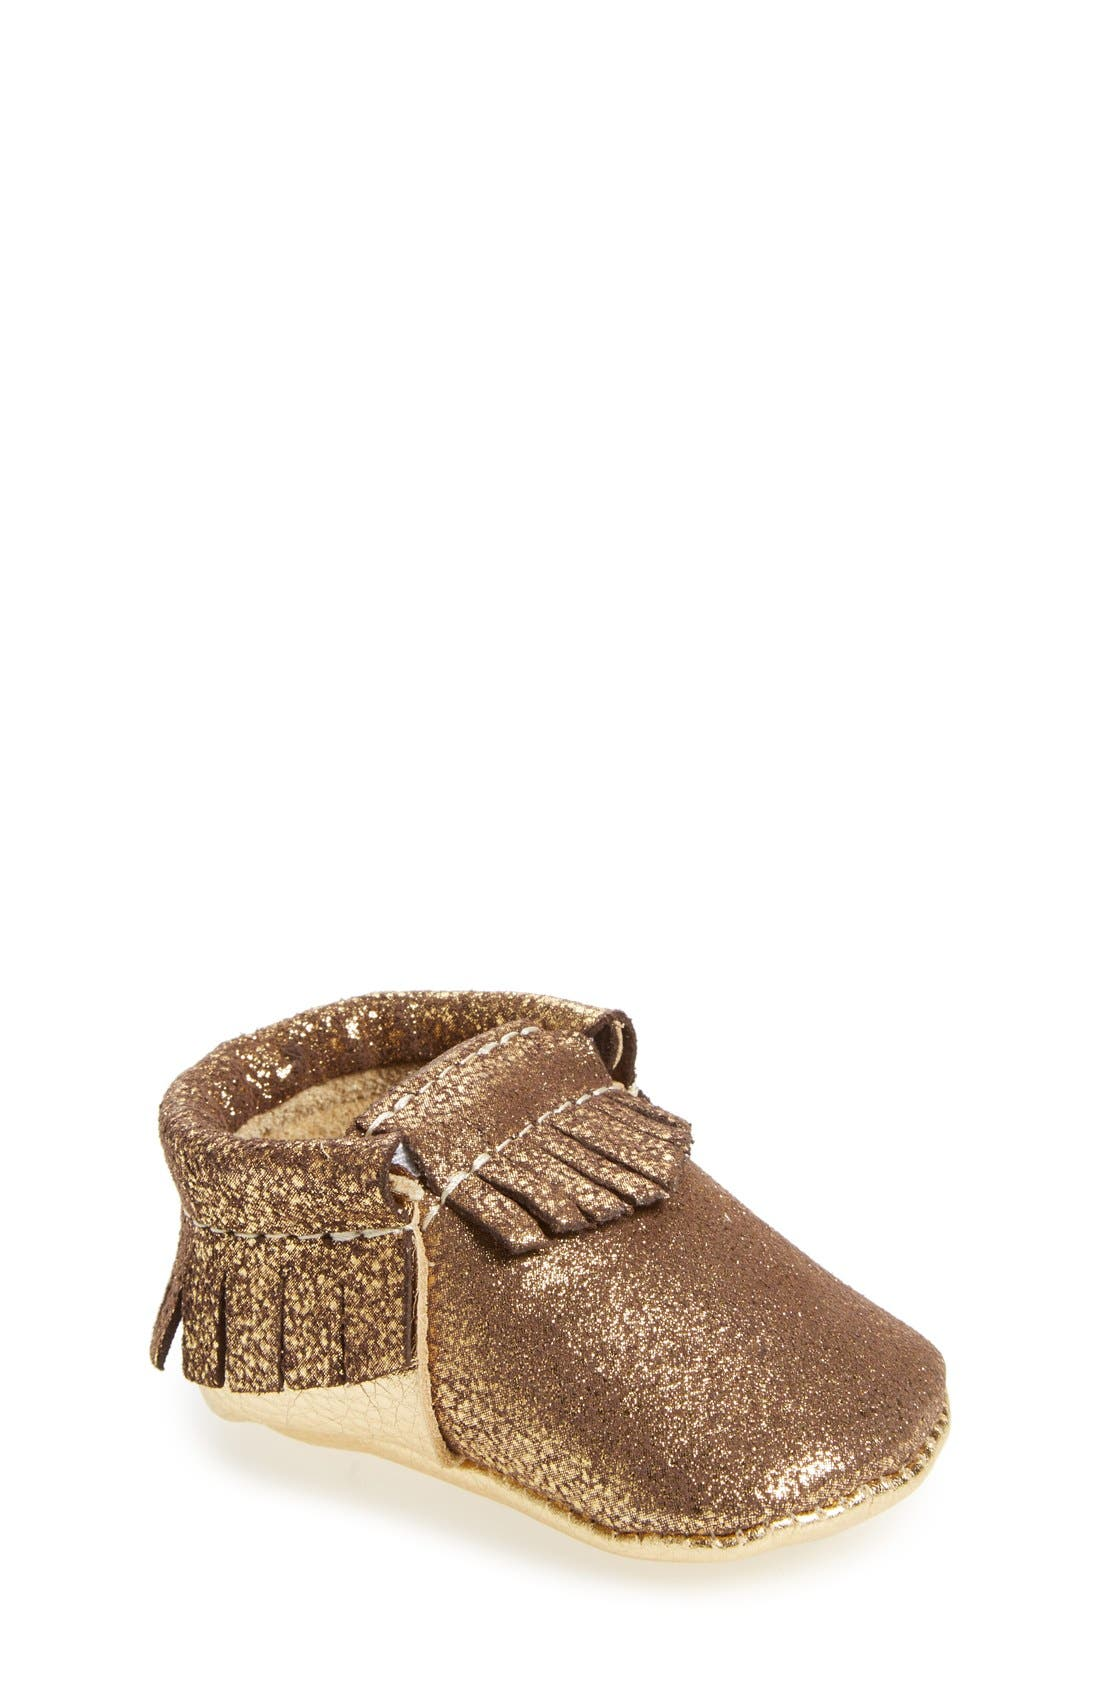 FRESHLY PICKED Metallic Leather Moccasin